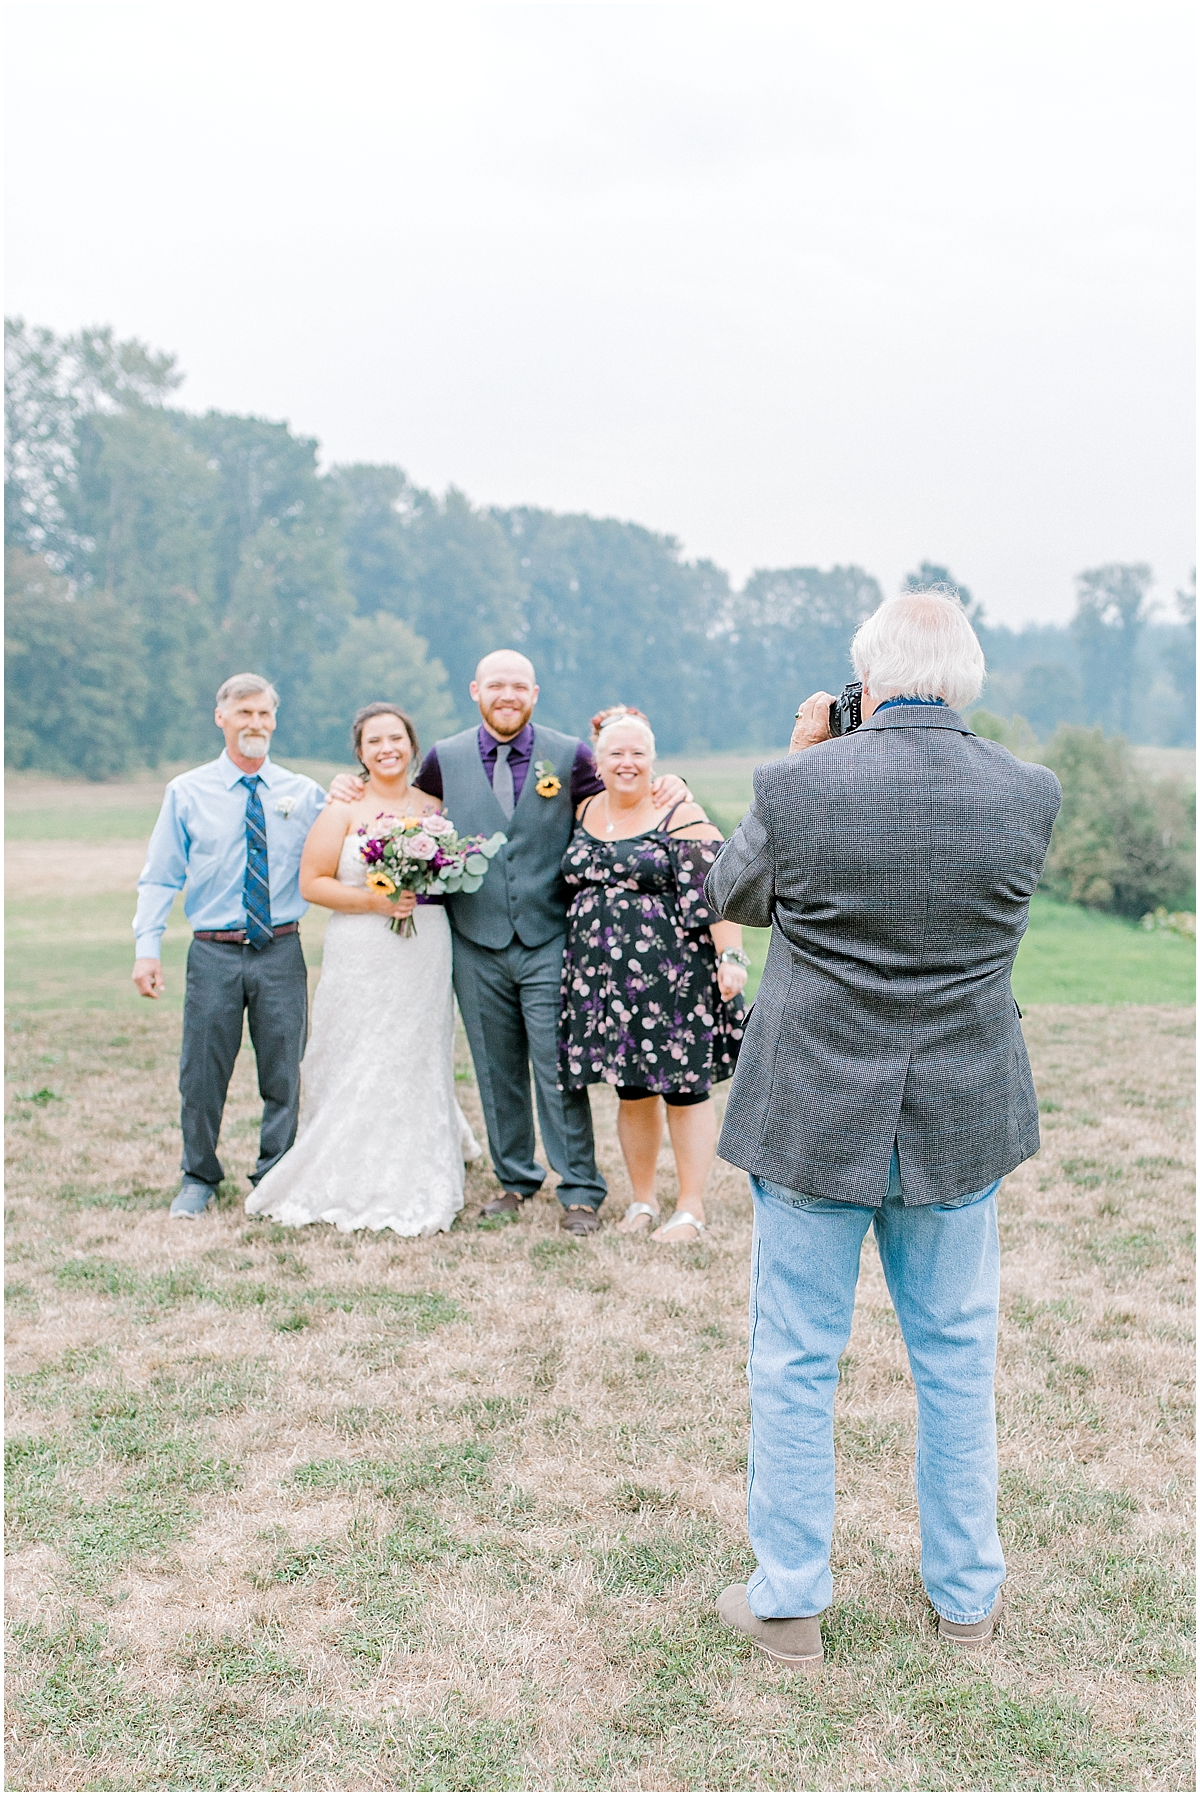 Sunflower themed wedding with purple accents, Emma Rose Company Seattle Wedding Photographer, Light and Airy photographer Kindred Presets Wedding Details PNW_0172.jpg